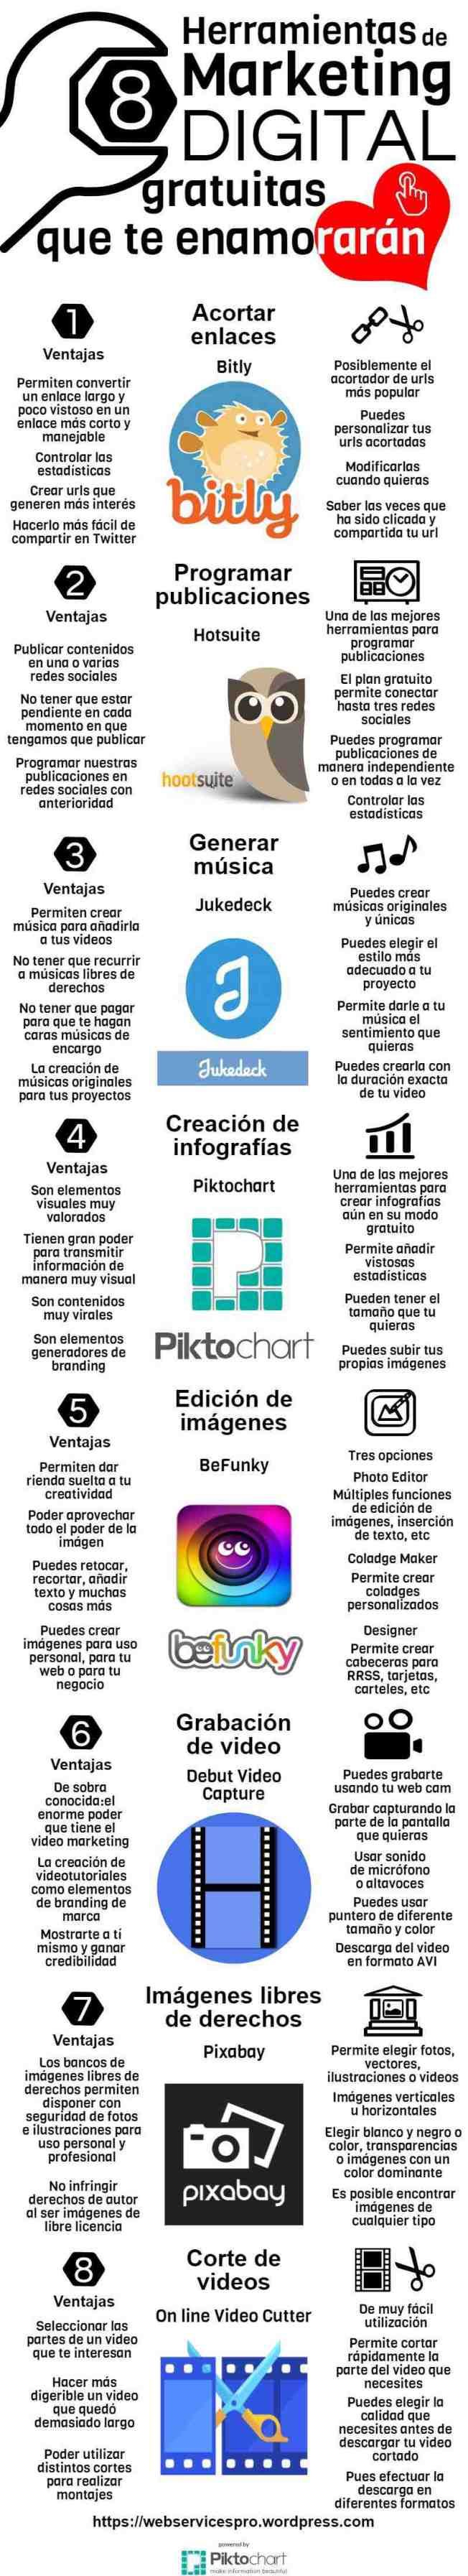 8 Herramientas de marketing digital gratuitas que te enamorarán https://webservicespro.wordpress.com/2016/04/11/8-herramientas-marketinlng-digital-gratuitas/